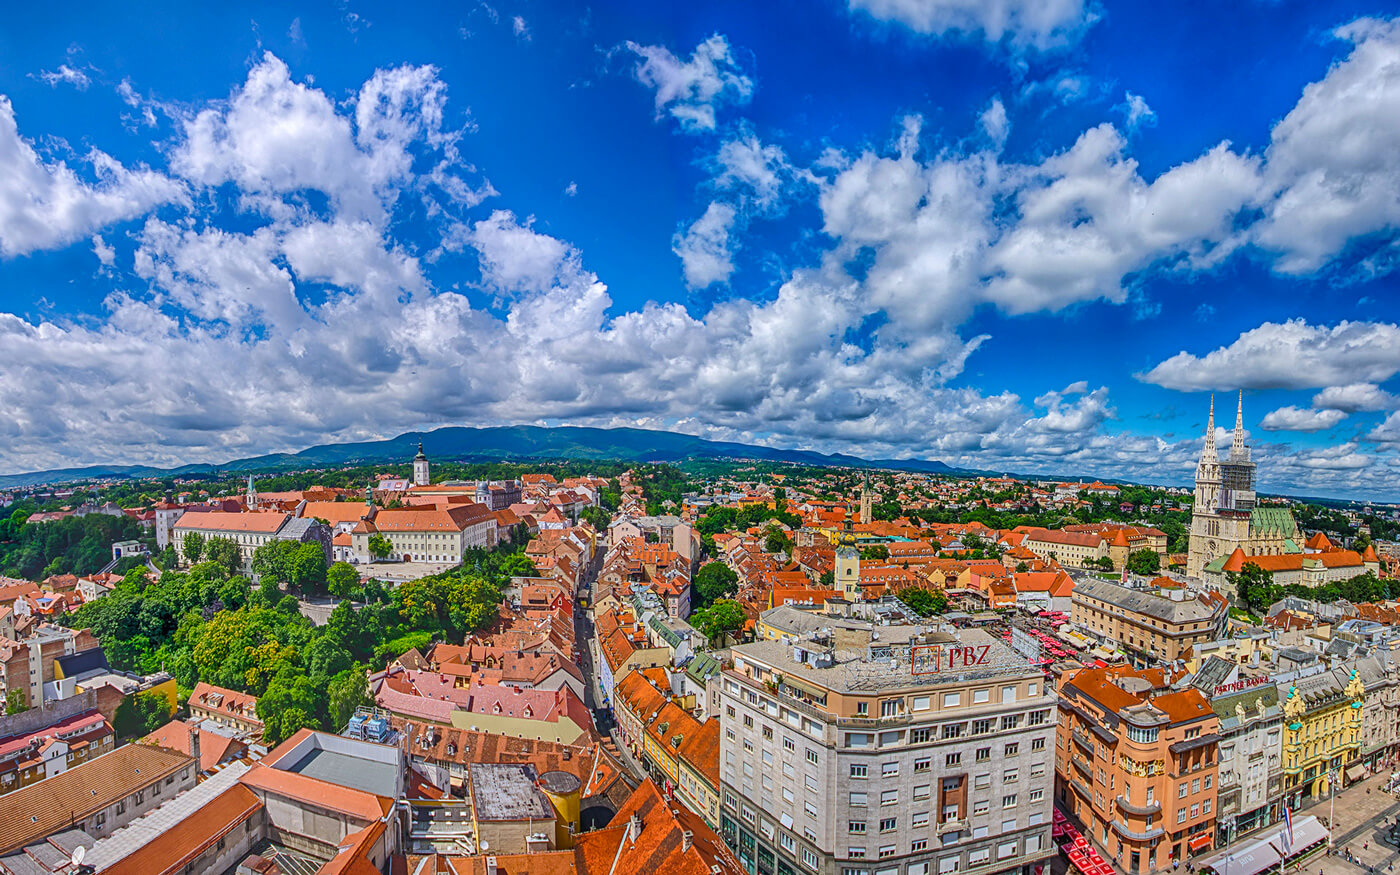 Photo credit: zagreb360.hr